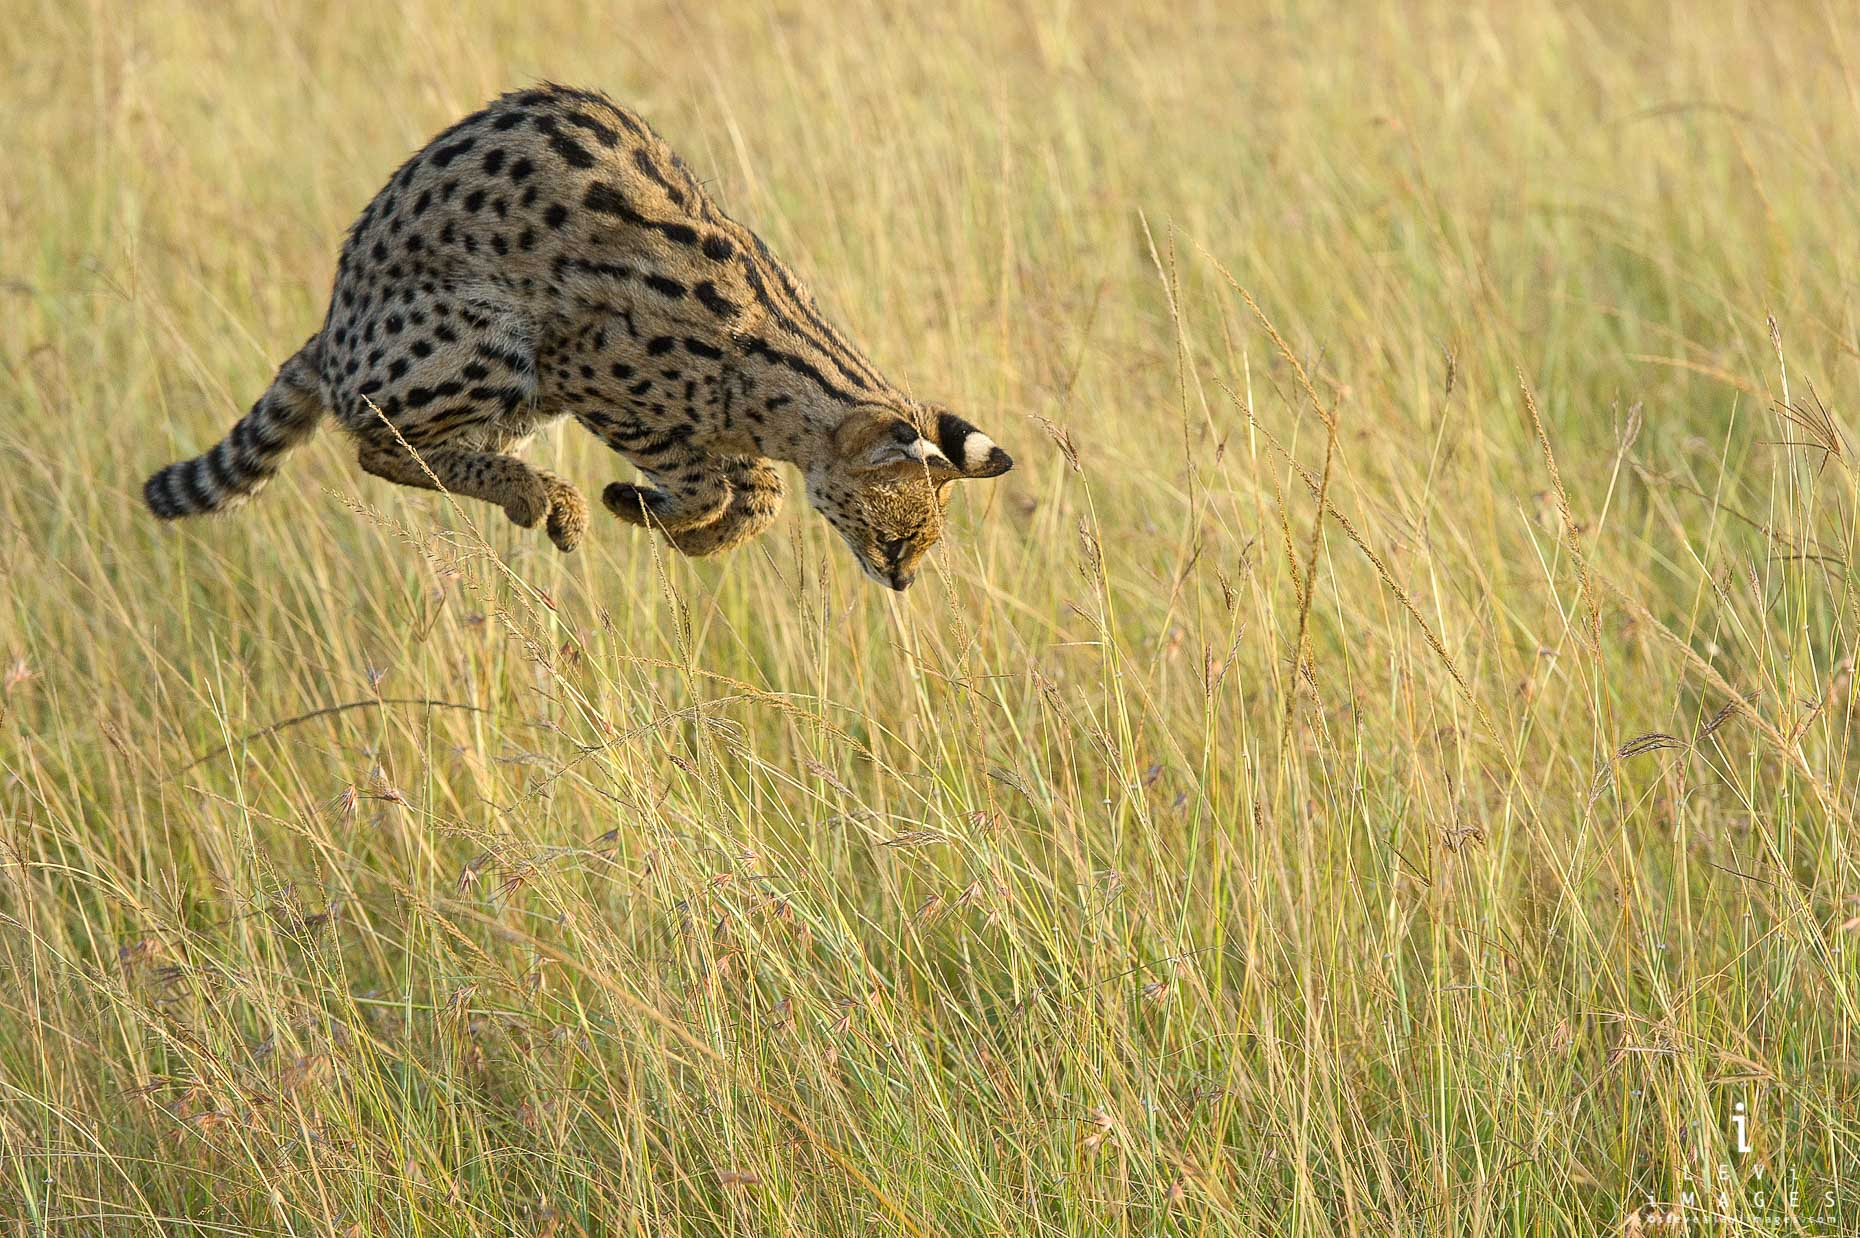 Serval (Leptailurus serval) cat pounces on prey. Maasai Mara, Africa